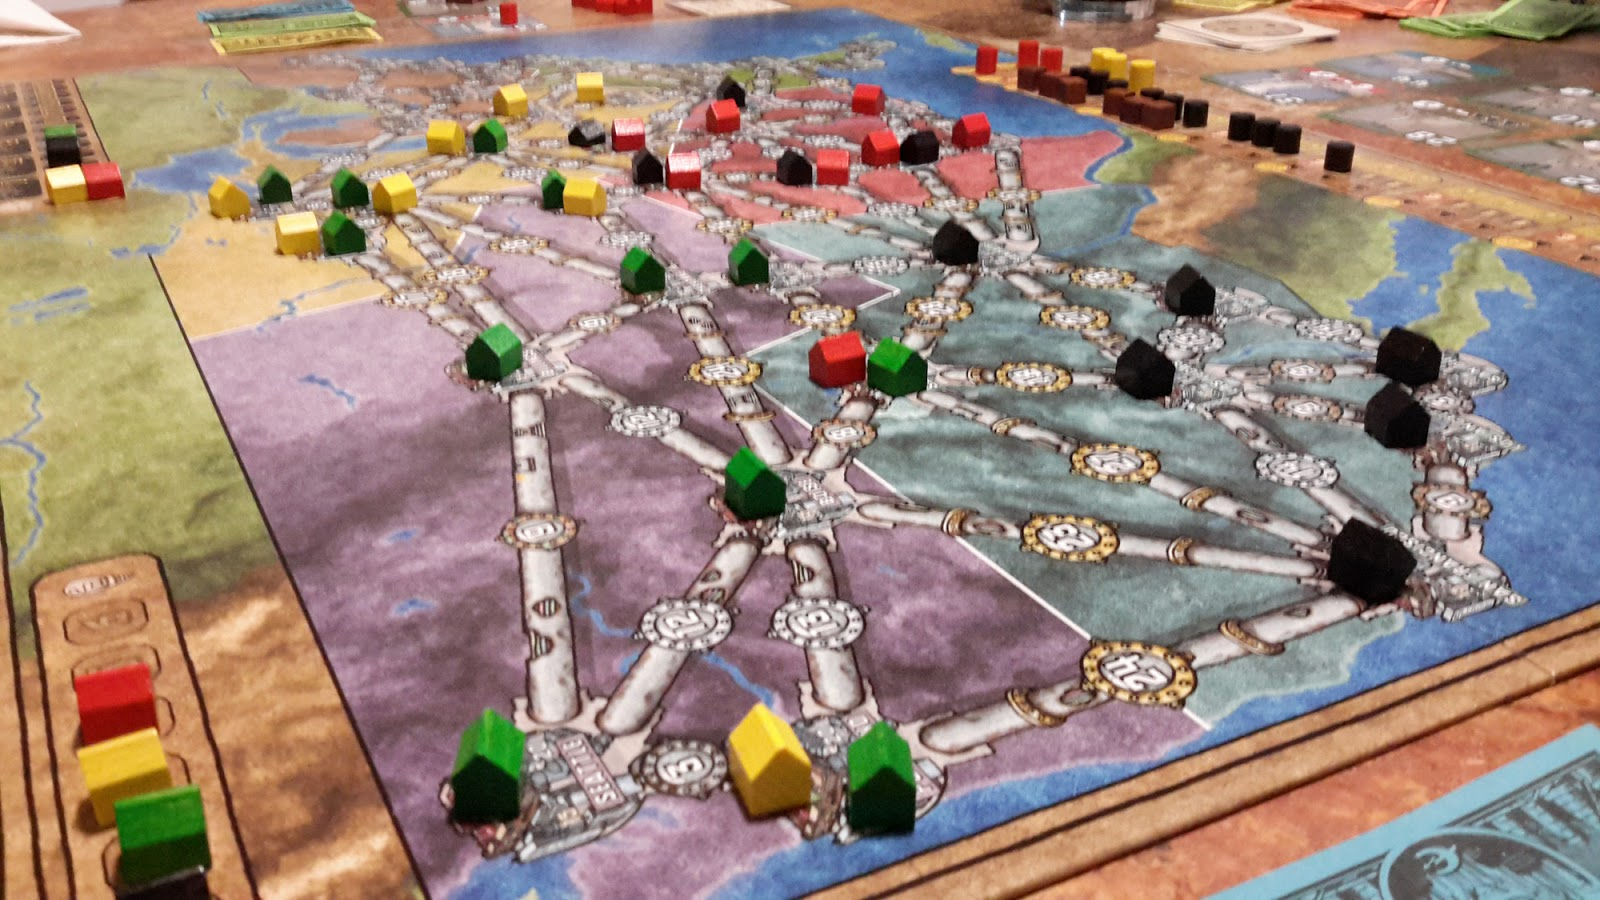 A game of Power Grid mid game, the board is littered with wooden houses.